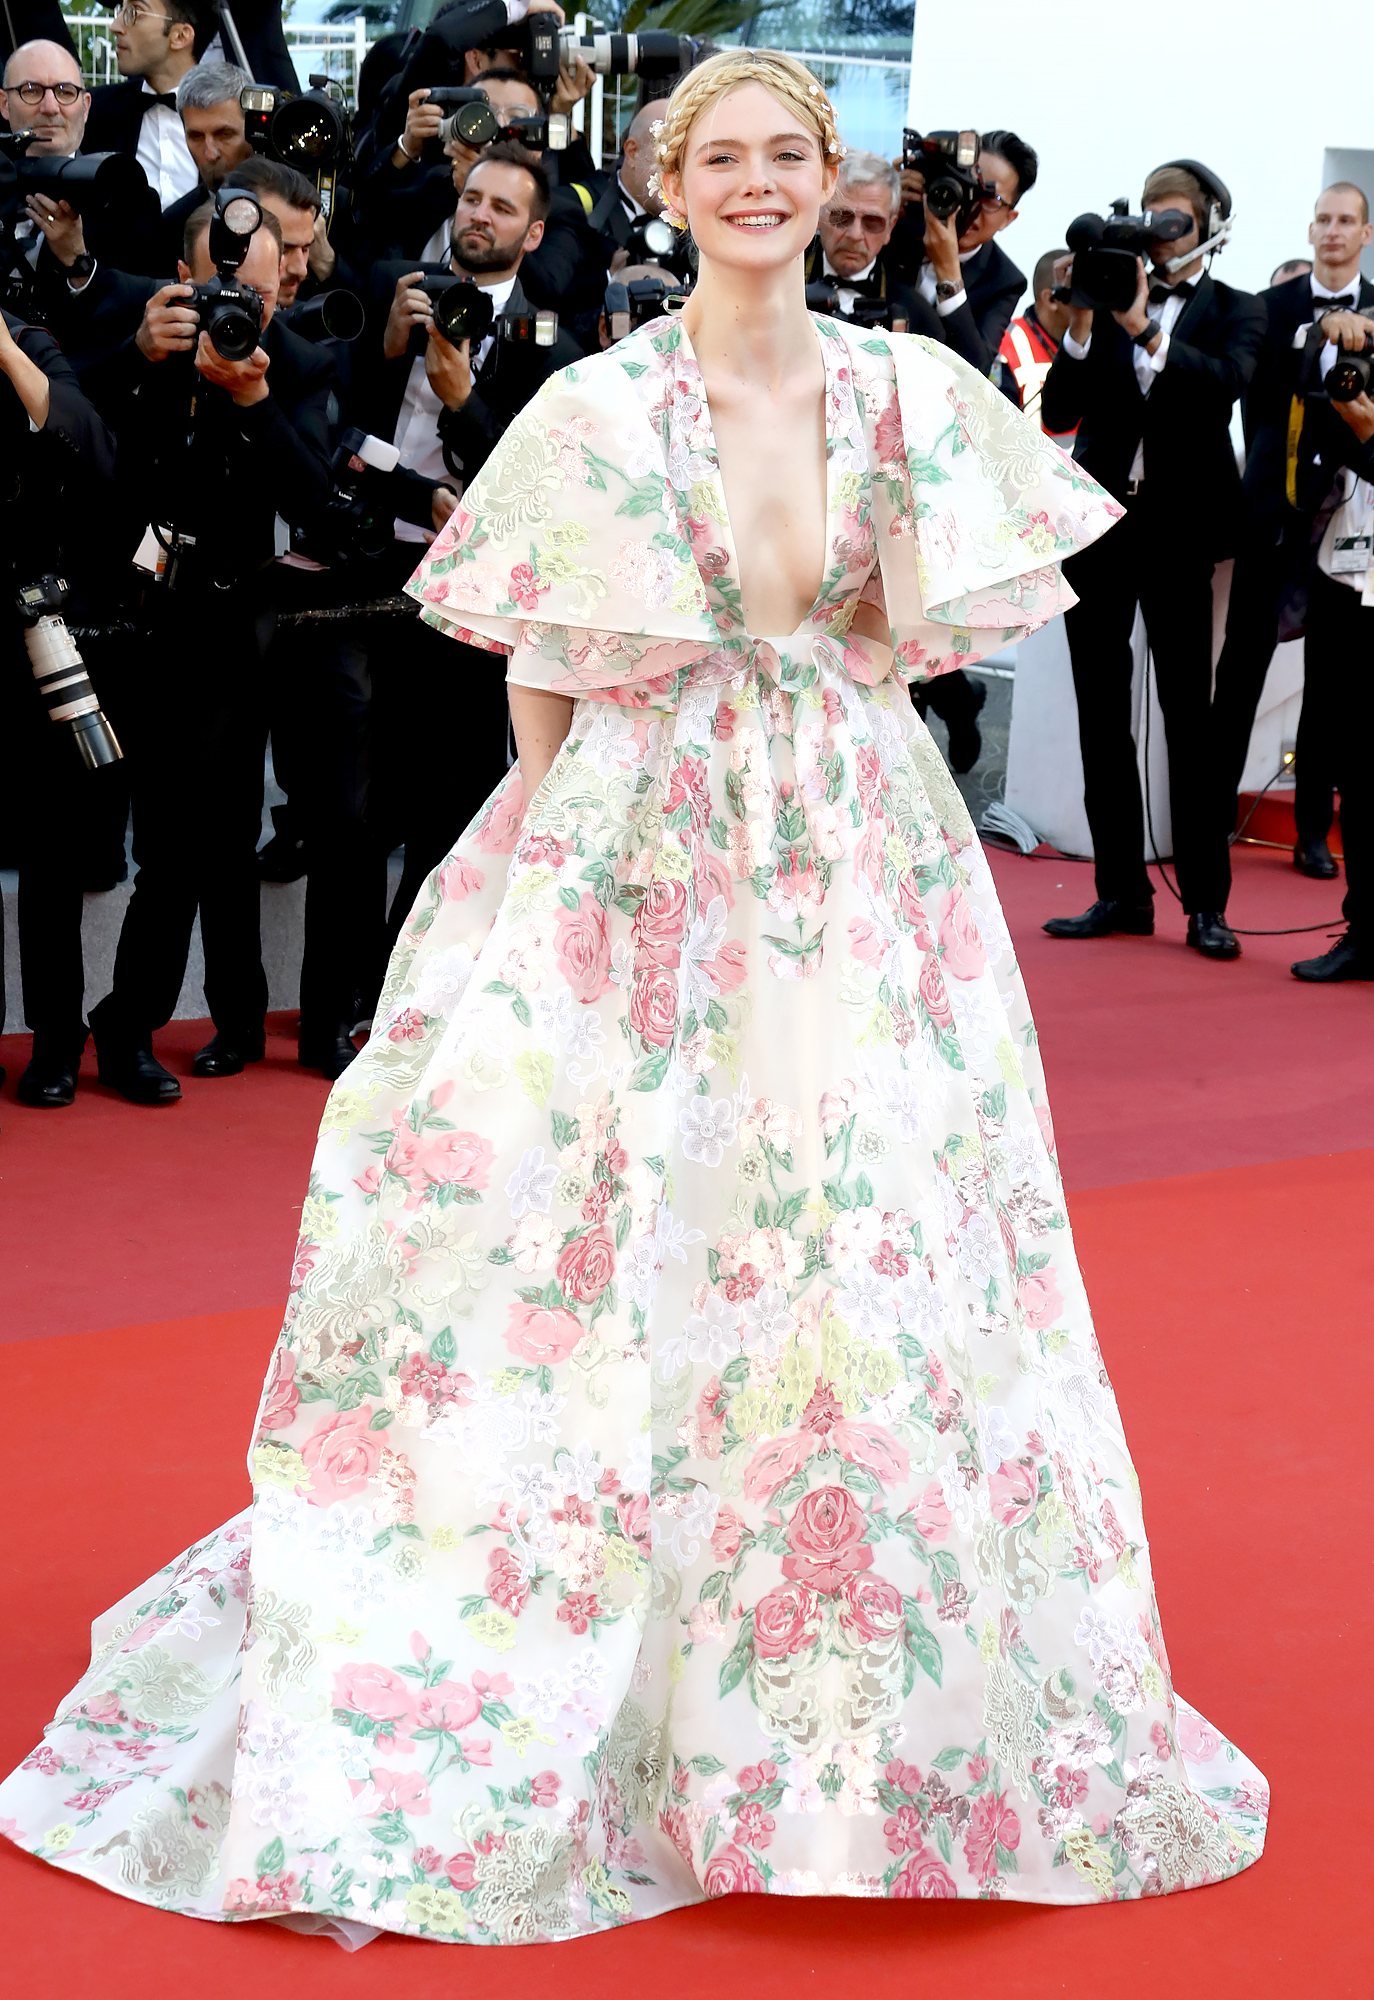 Elle-Fanning-Cannes-Festival - The jurist was the belle of the ball at the Les Miserables screening on Wednesday, May 15, in her flowery Valentino ballgown.